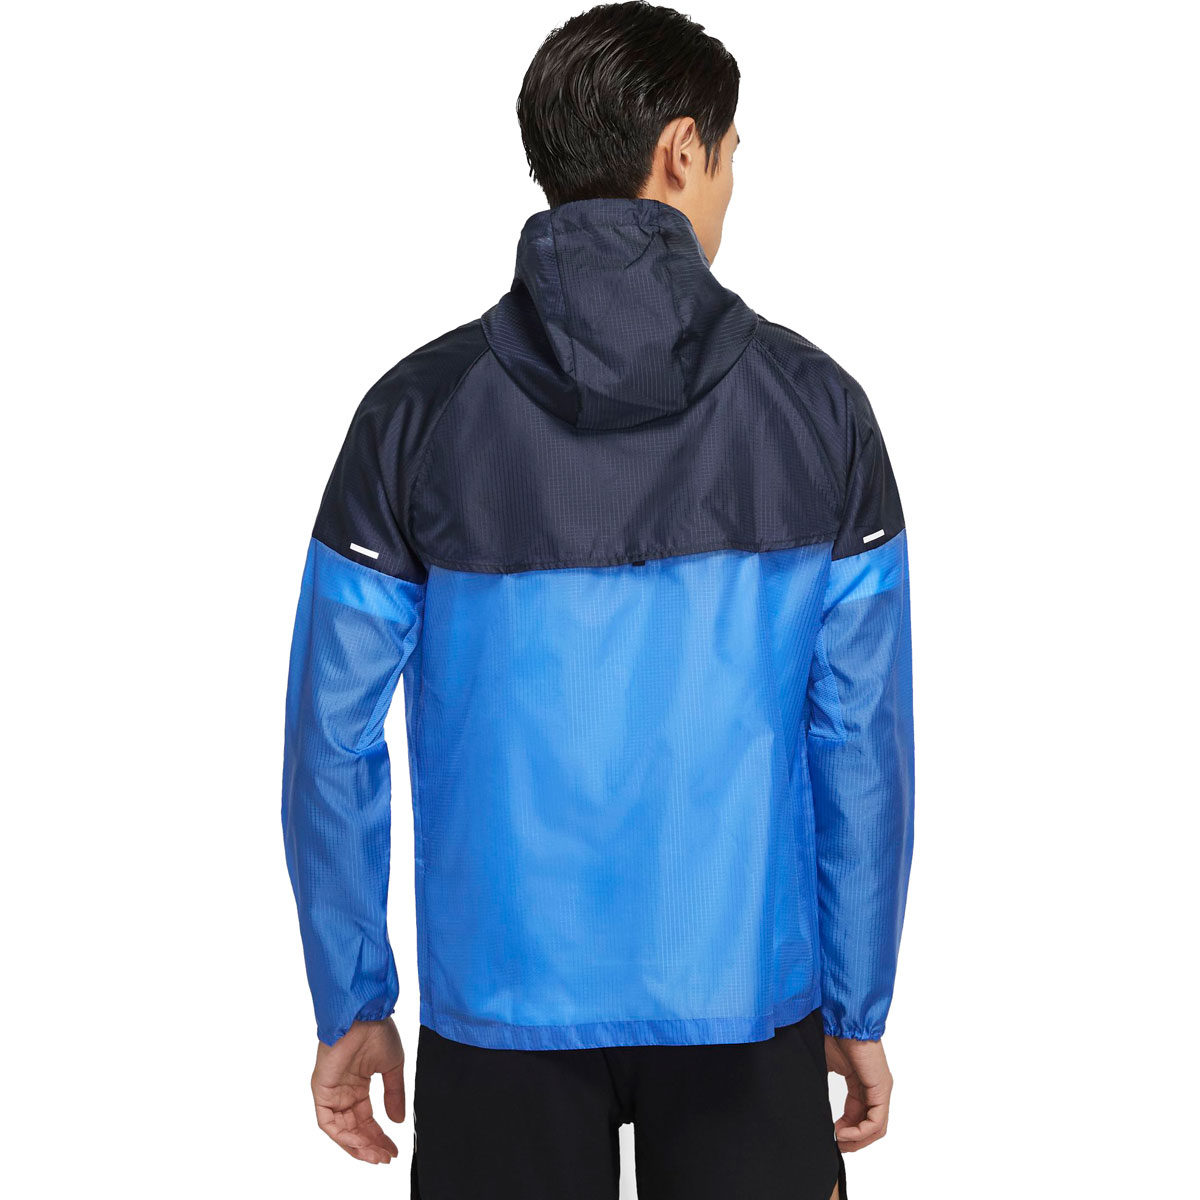 Men's Nike Windrunner Running Jacket - Color: Pacific Blue/Obsidian/Reflective Silver - Size: S, Pacific Blue/Obsidian/Reflective Silver, large, image 2